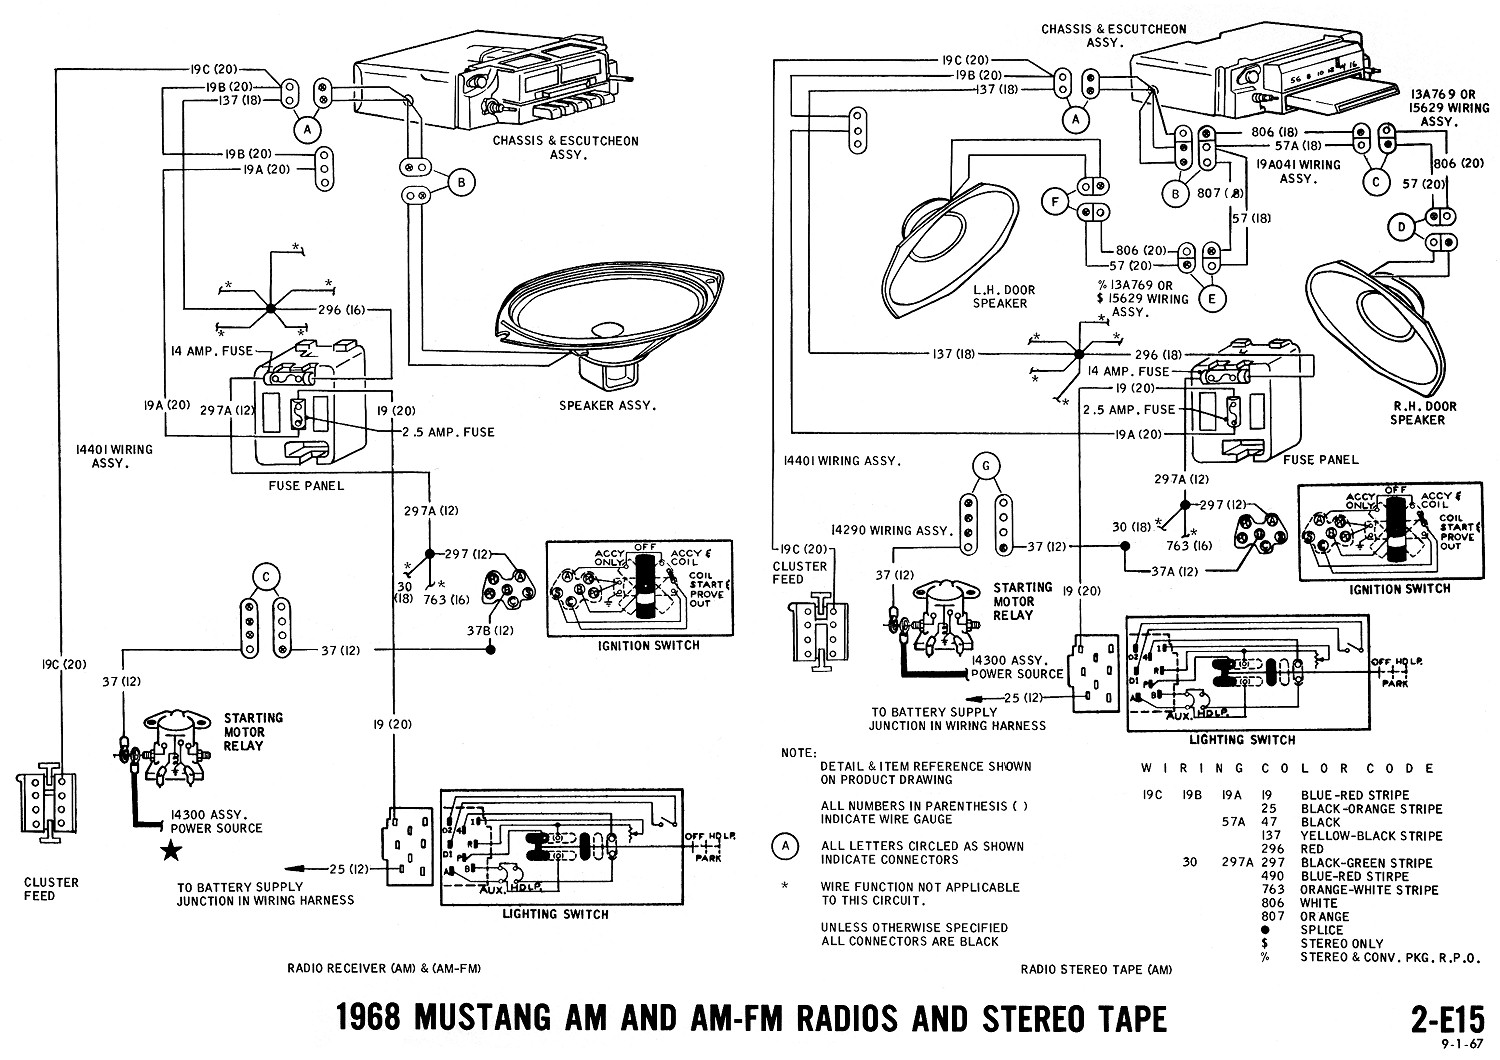 1968 mustang wiring diagrams evolving software rh peterfranza com Ford F-150 Wiring Harness Diagram EZ Wire Wiring Harness Diagram